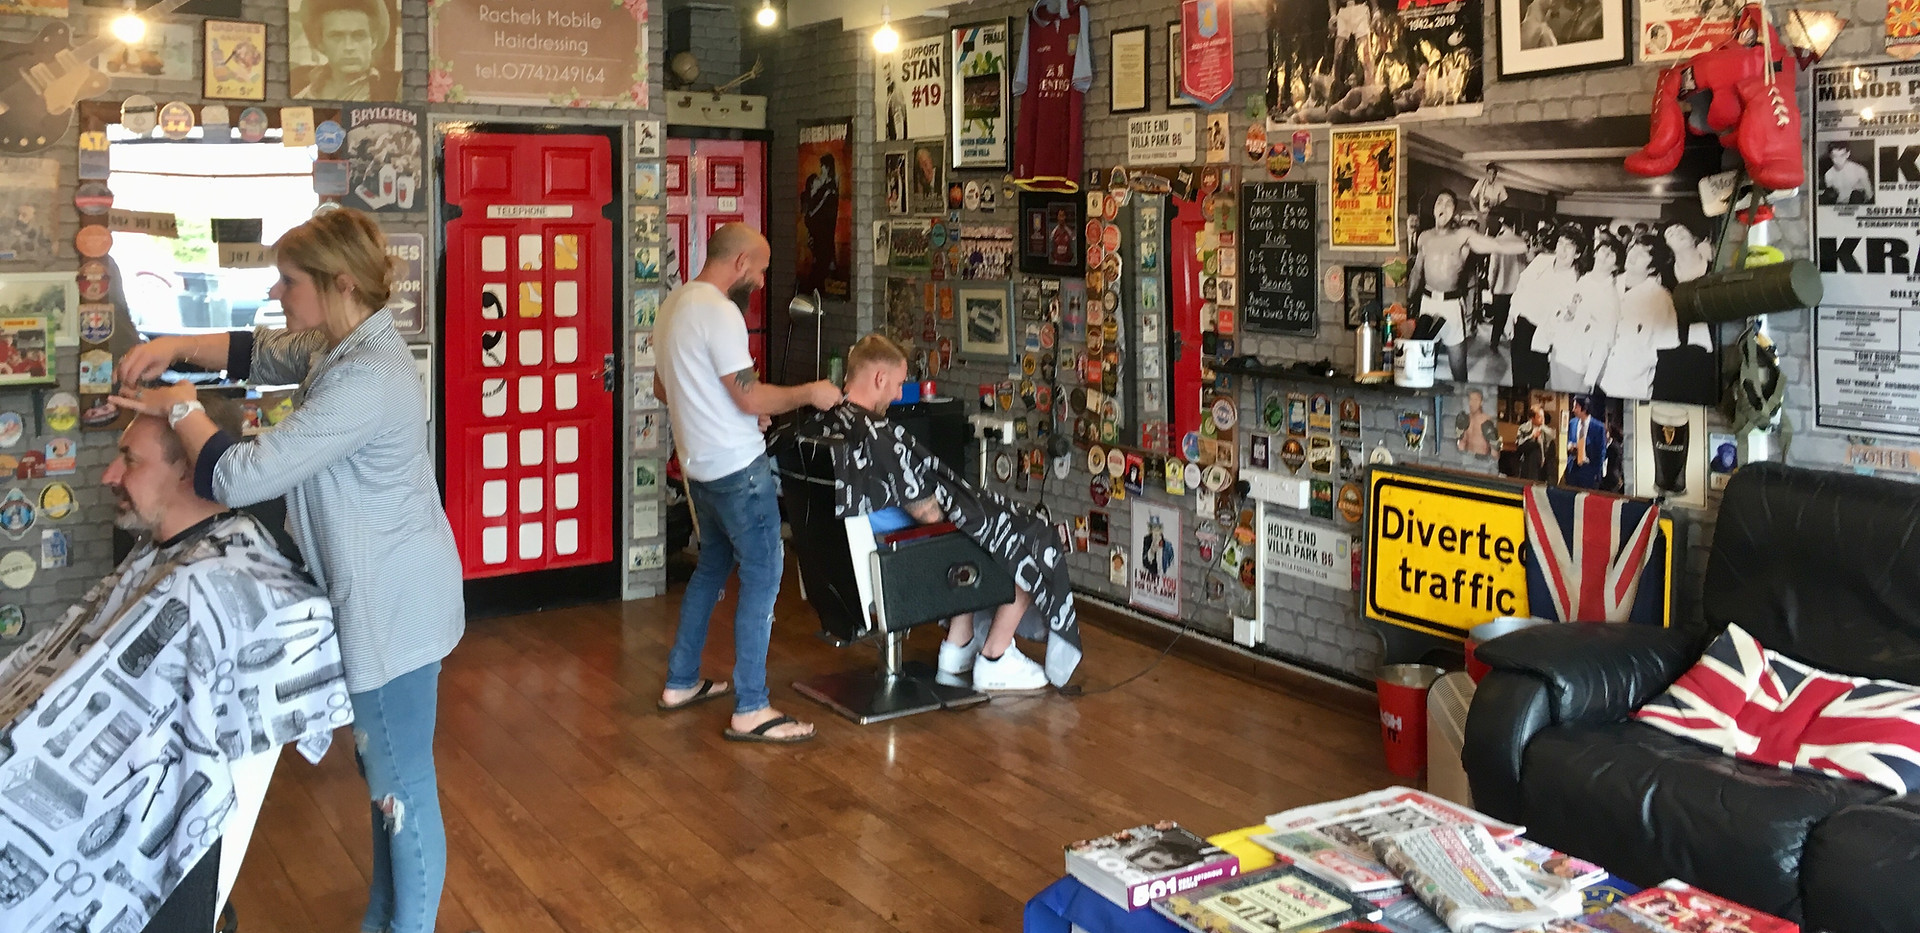 Inside Franky The Barbers Whitestone, Nuneaton